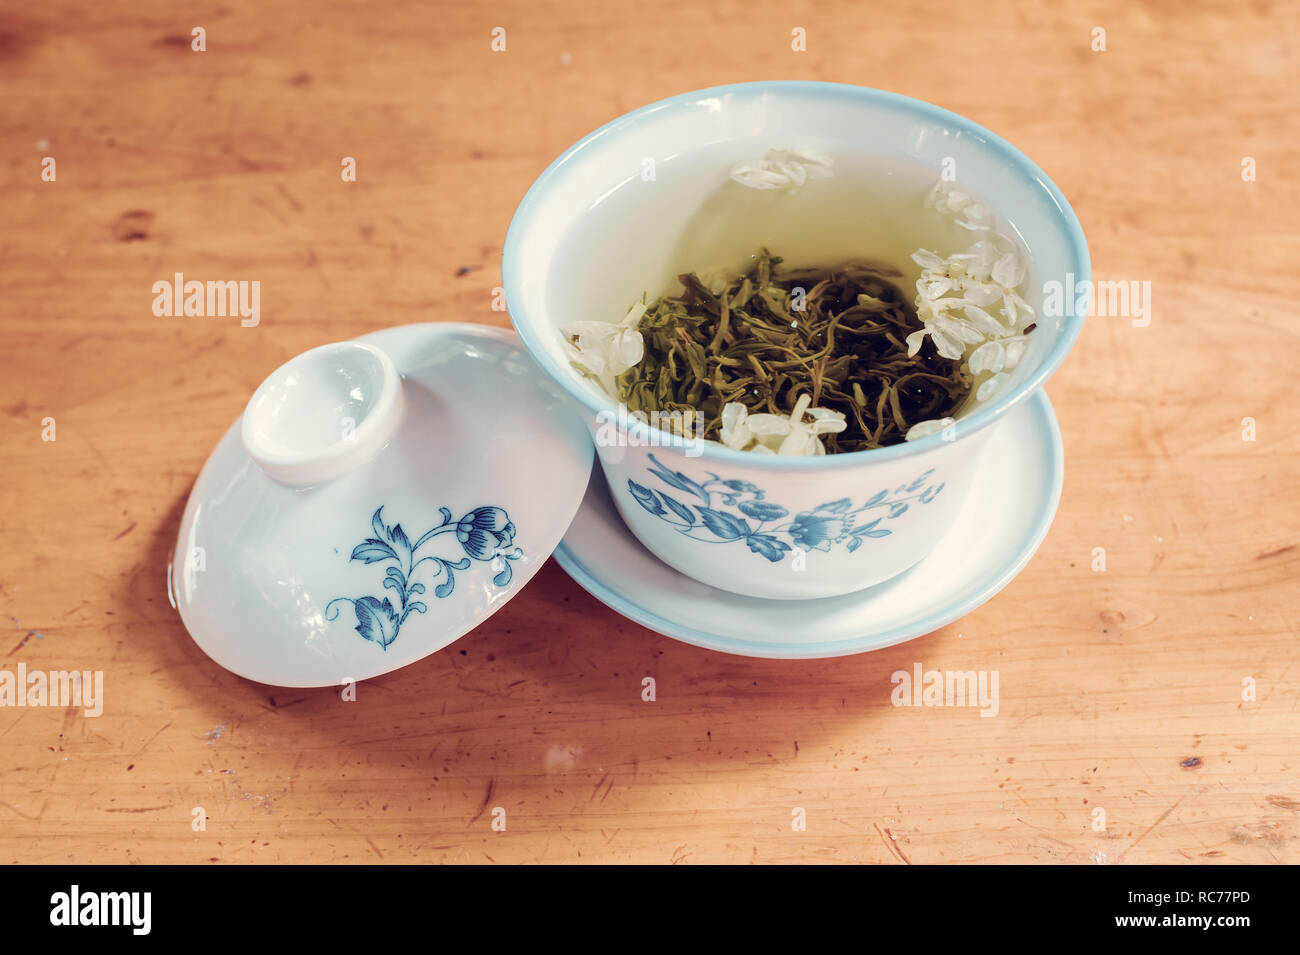 tea cup on a wooden table close-up view - Stock Image